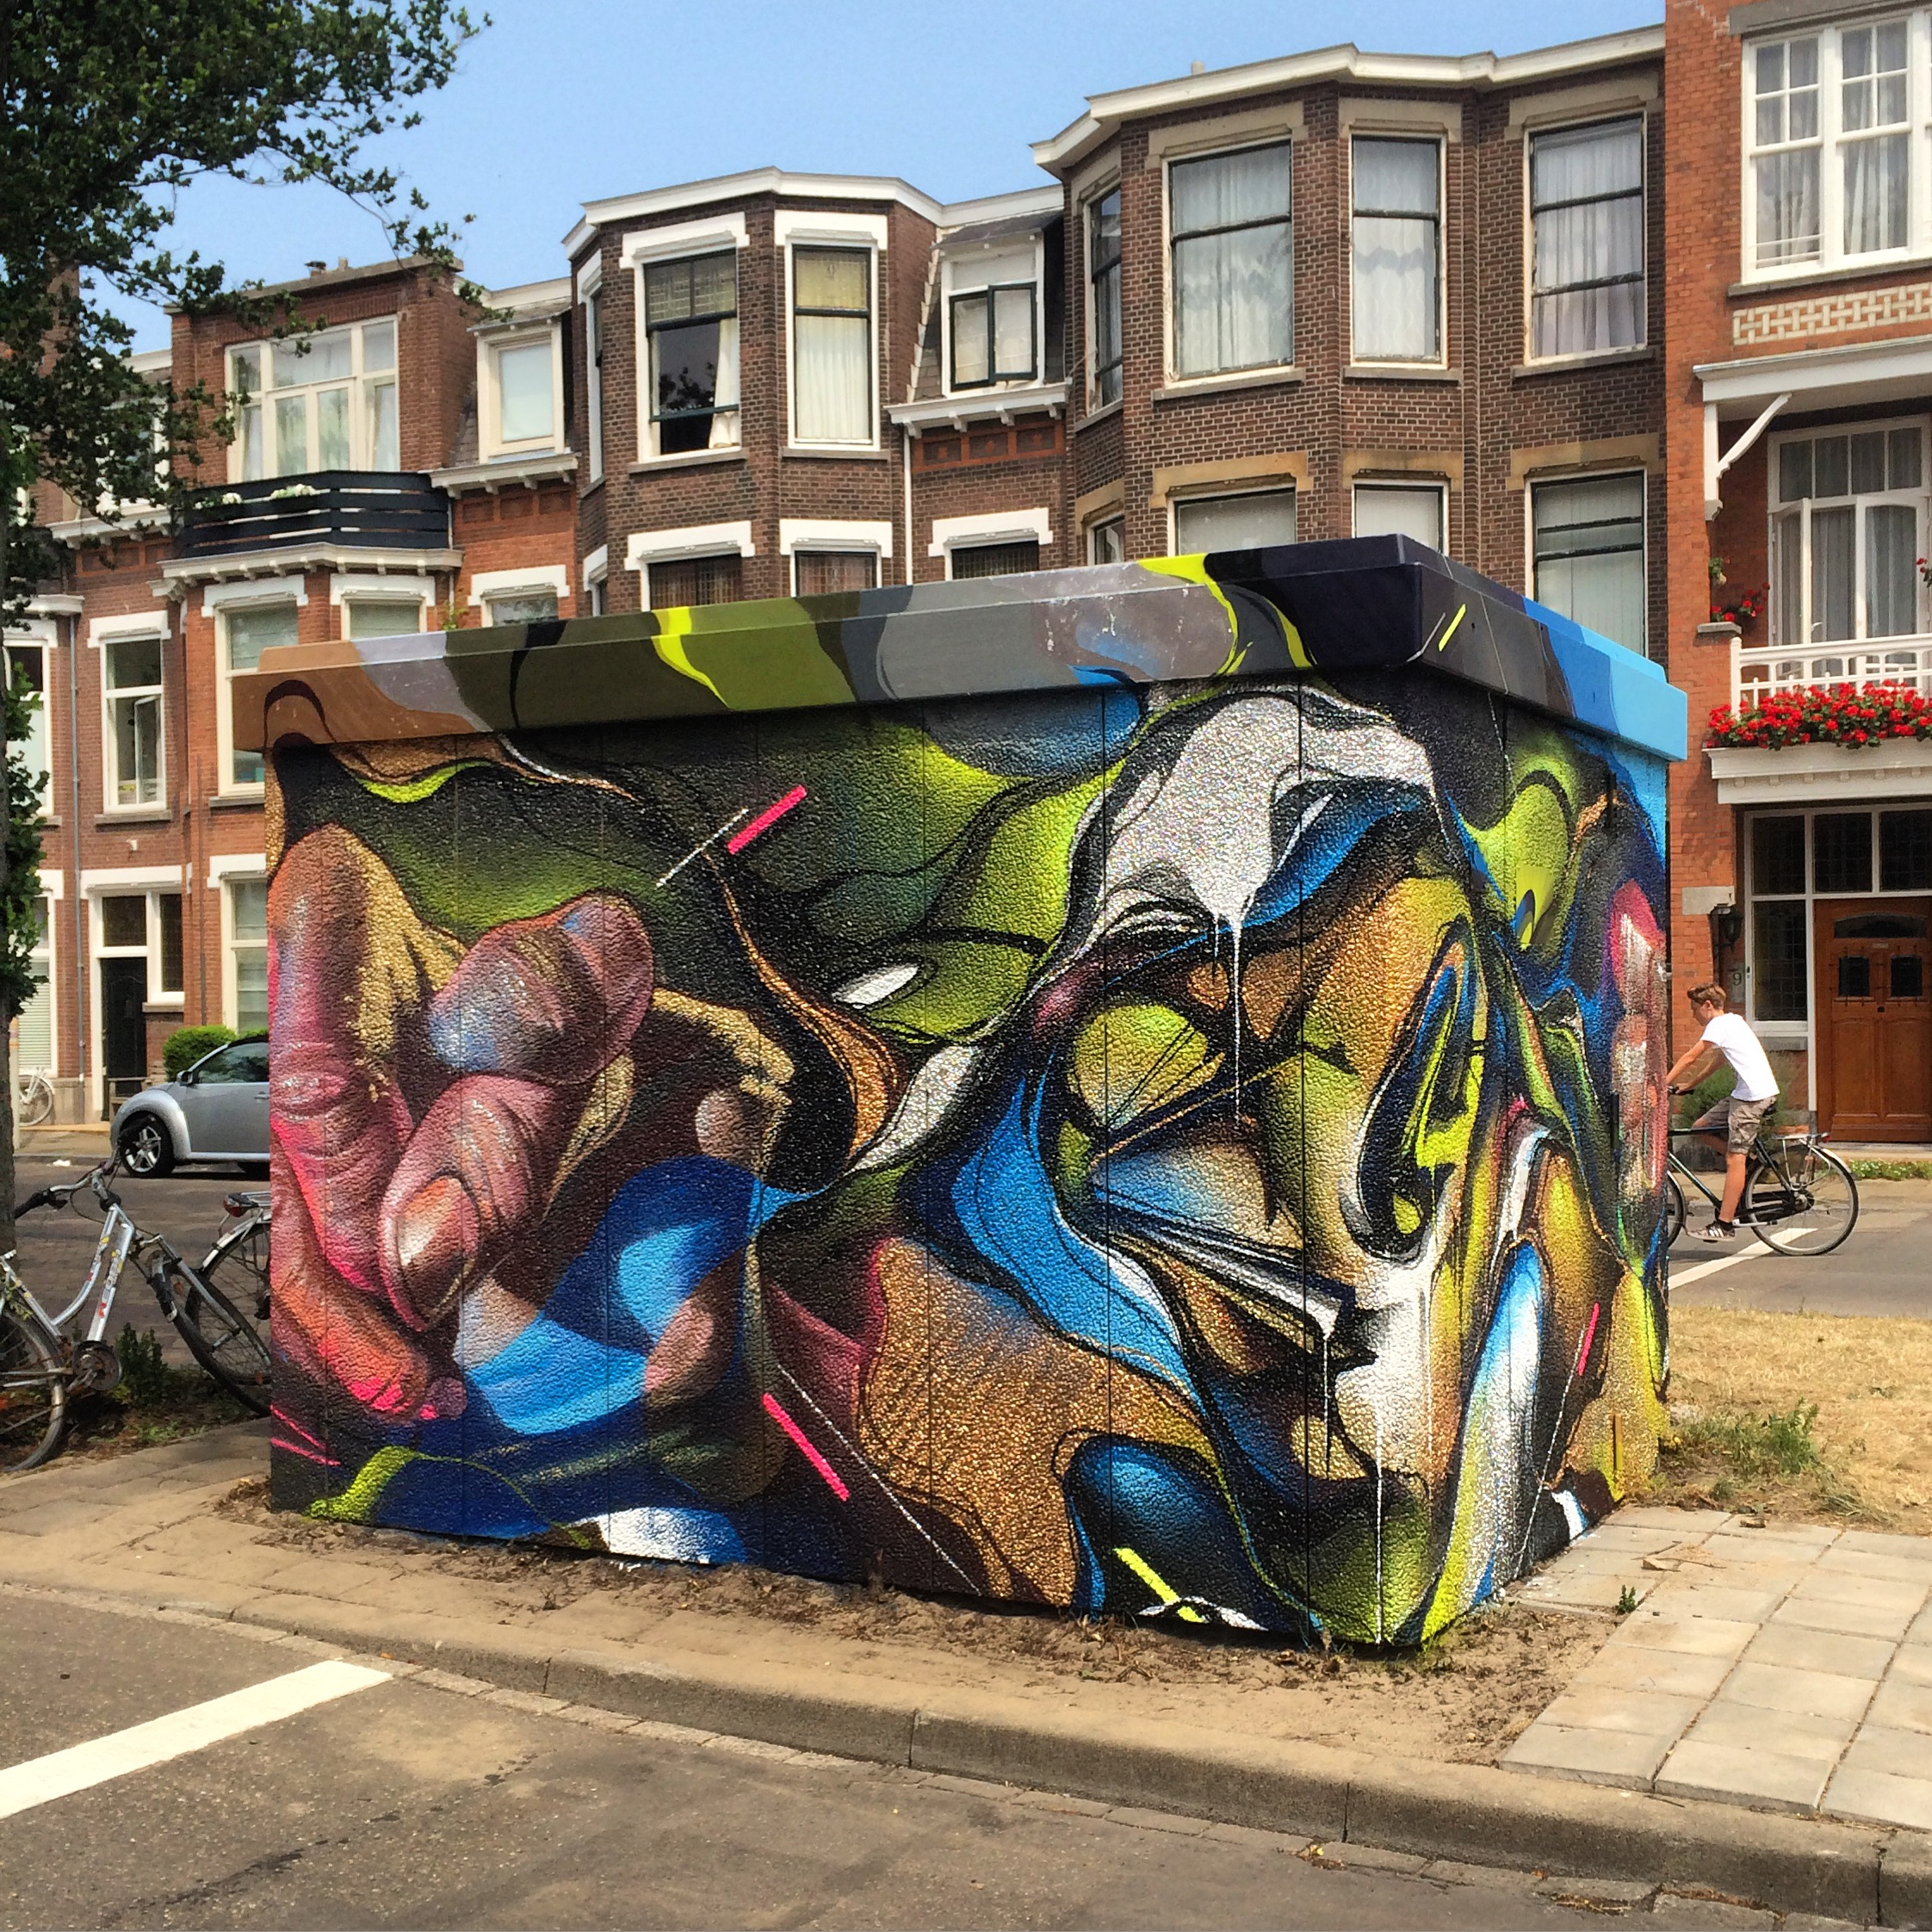 A work by Does - The hague the netherlands mural ieplaan case 2